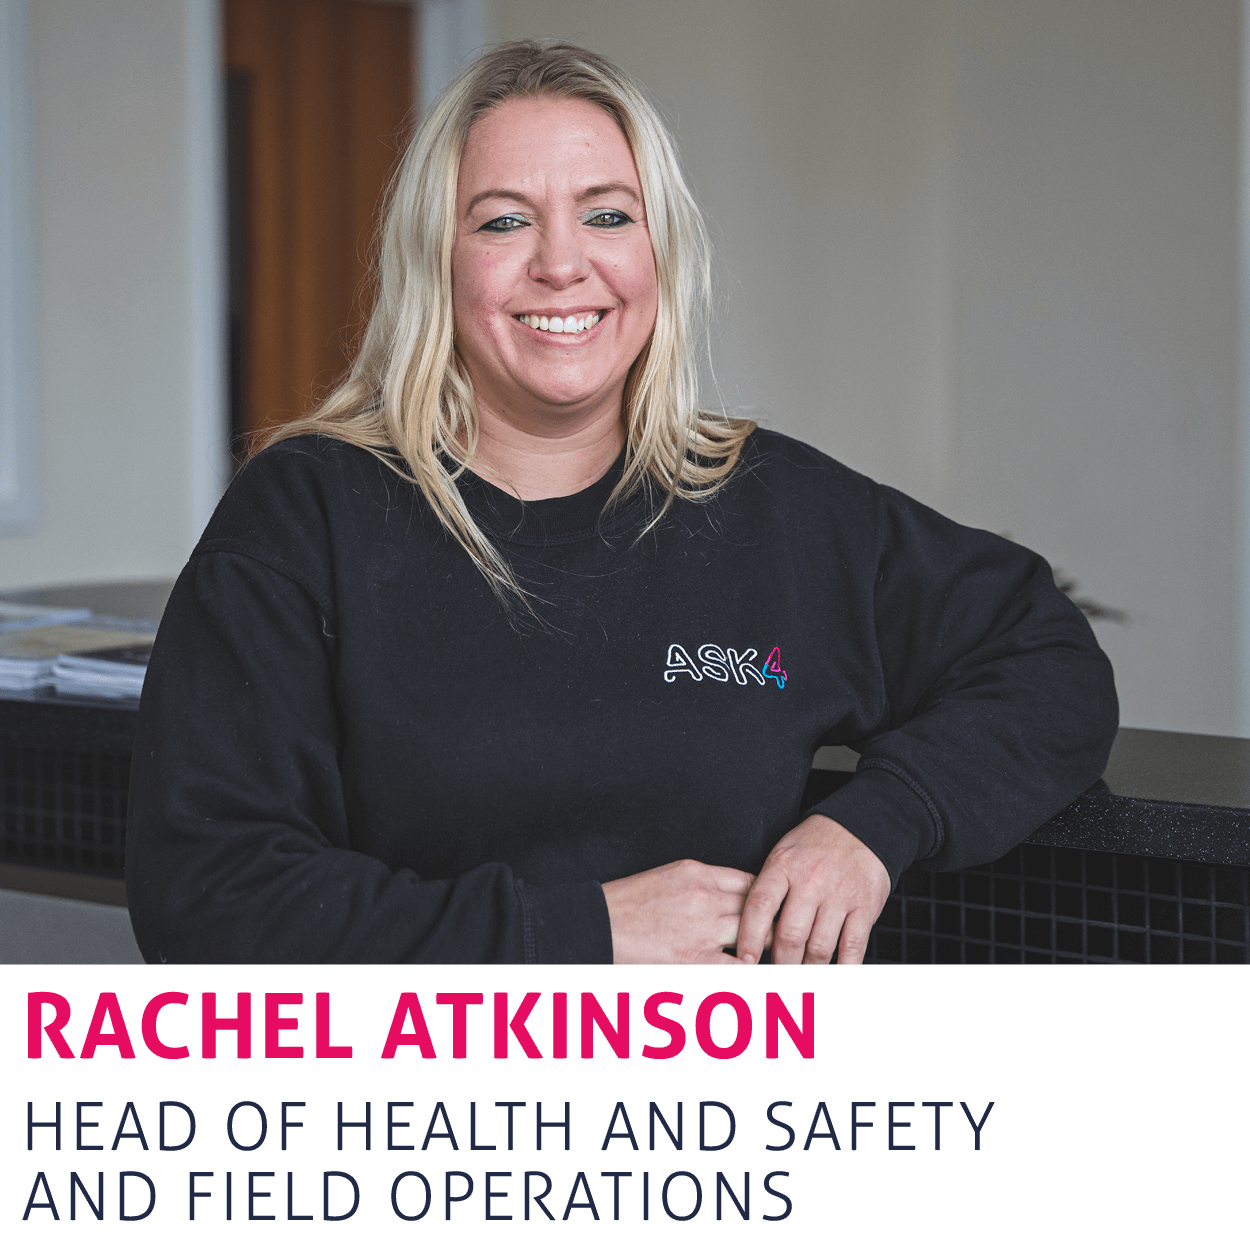 Rachel Aktinson, Head of Health and Safety and Field Operations